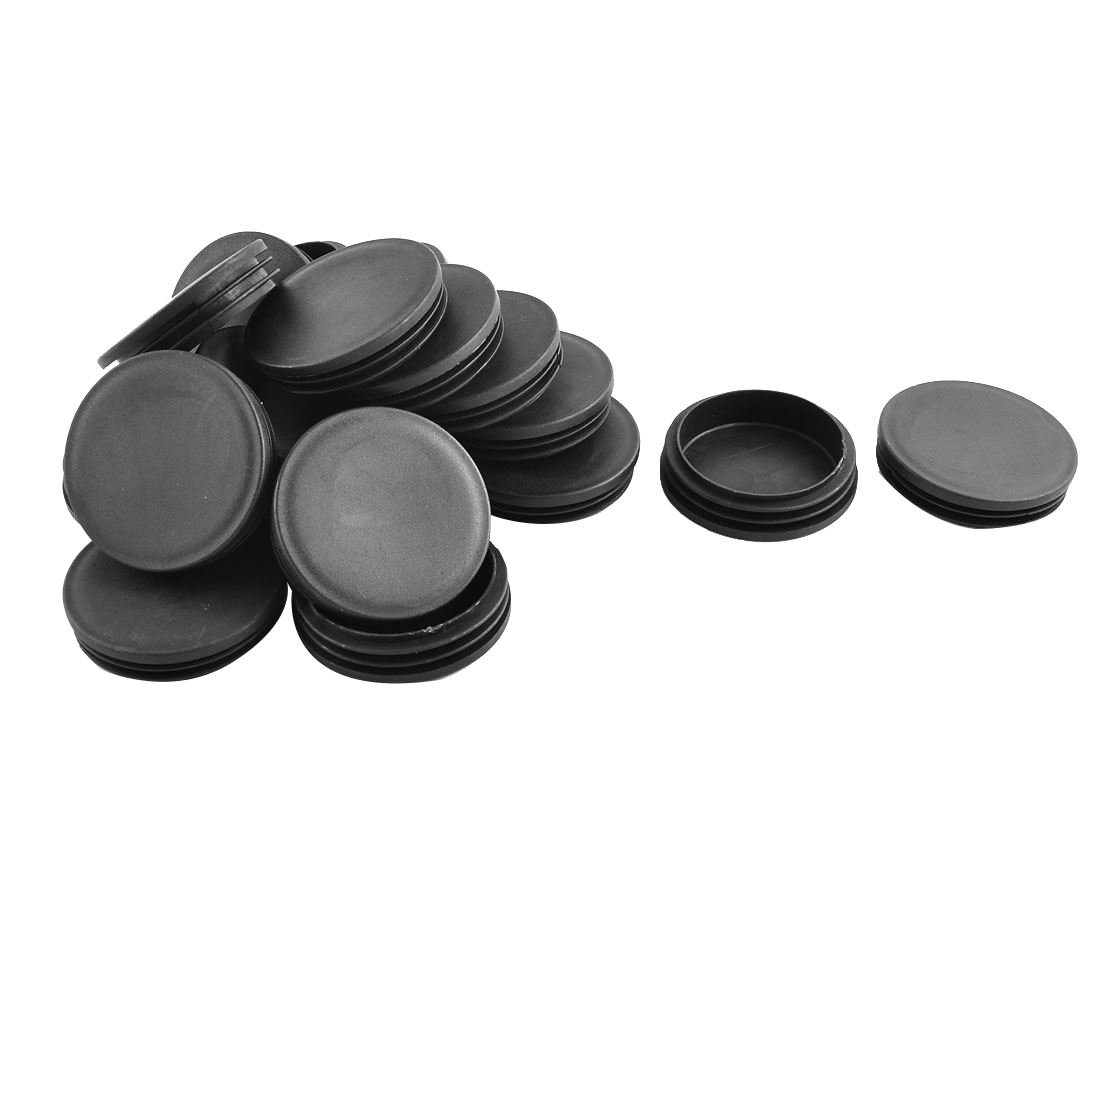 74mm Diameter Plastic Cap Round Ribbed Tube Inserts 20 Pcs for Chair Table Legs